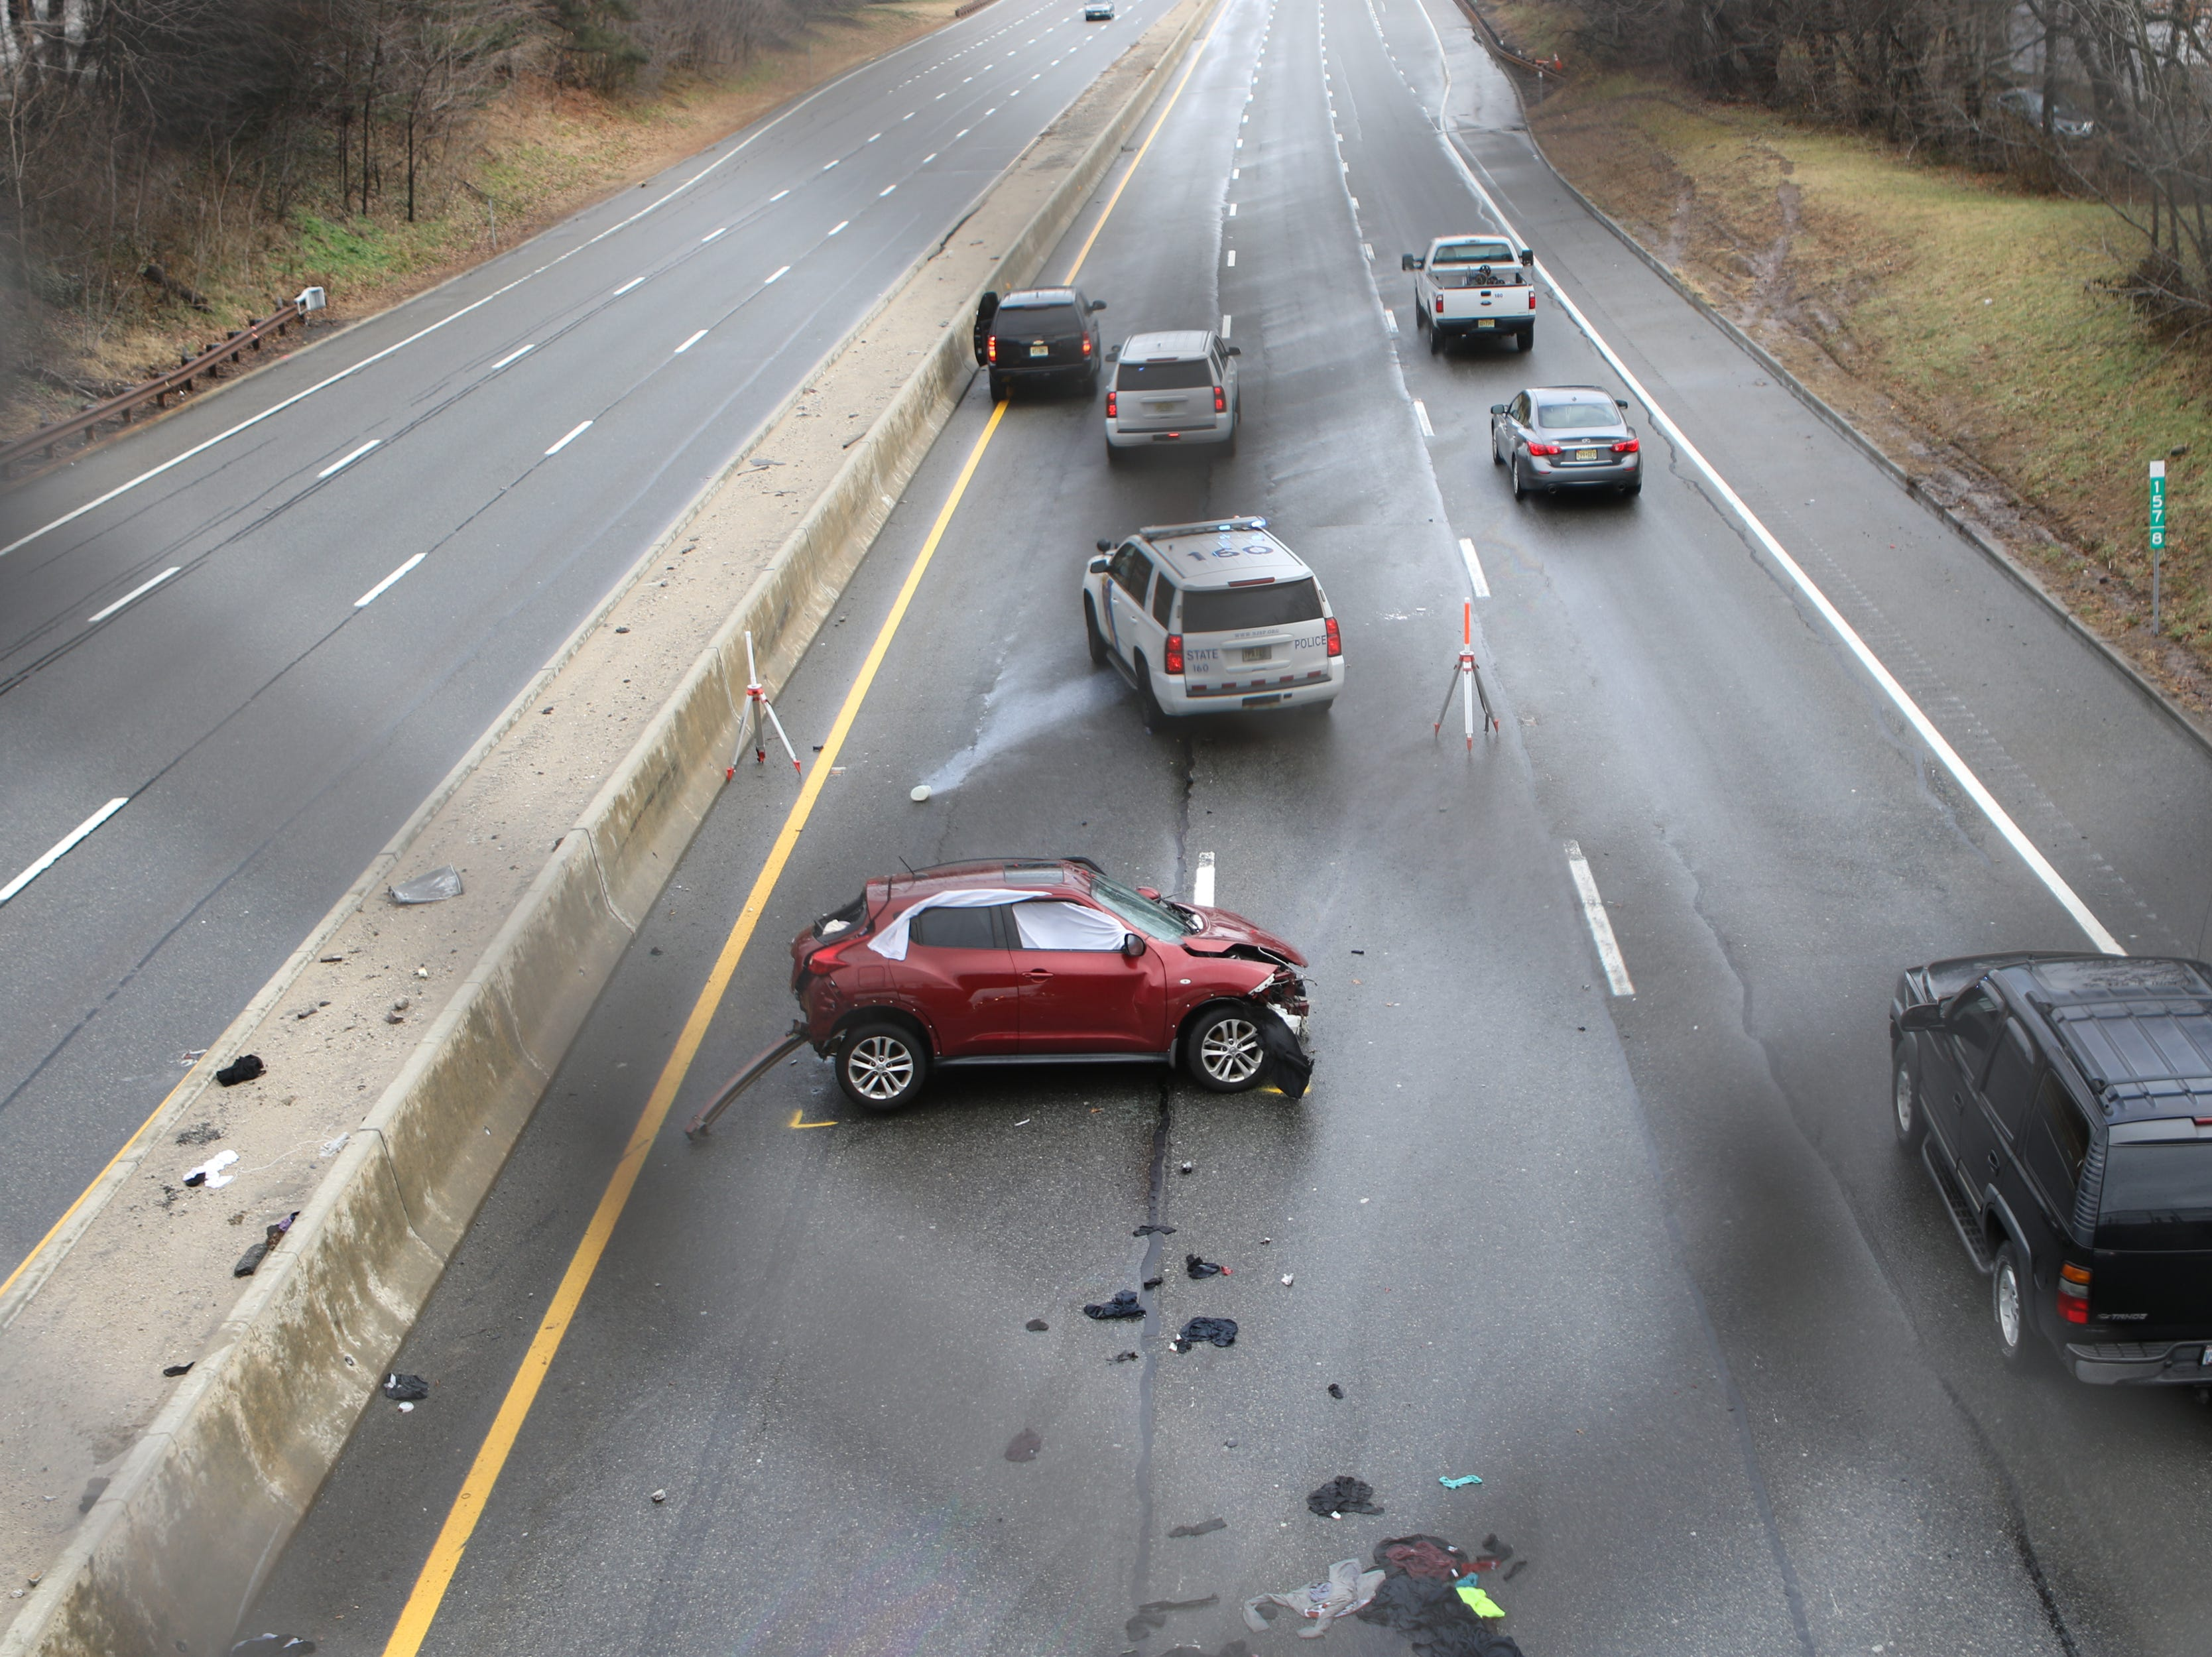 A maroon Nissan is shown on the Garden State Parkway after a fatal accident in Clifton, Sunday, January 20, 2019.  Nazim Urgan (not shown), who could see the accident from his backyard, said there have been a few crashes in the same exact spot which gives him concern.